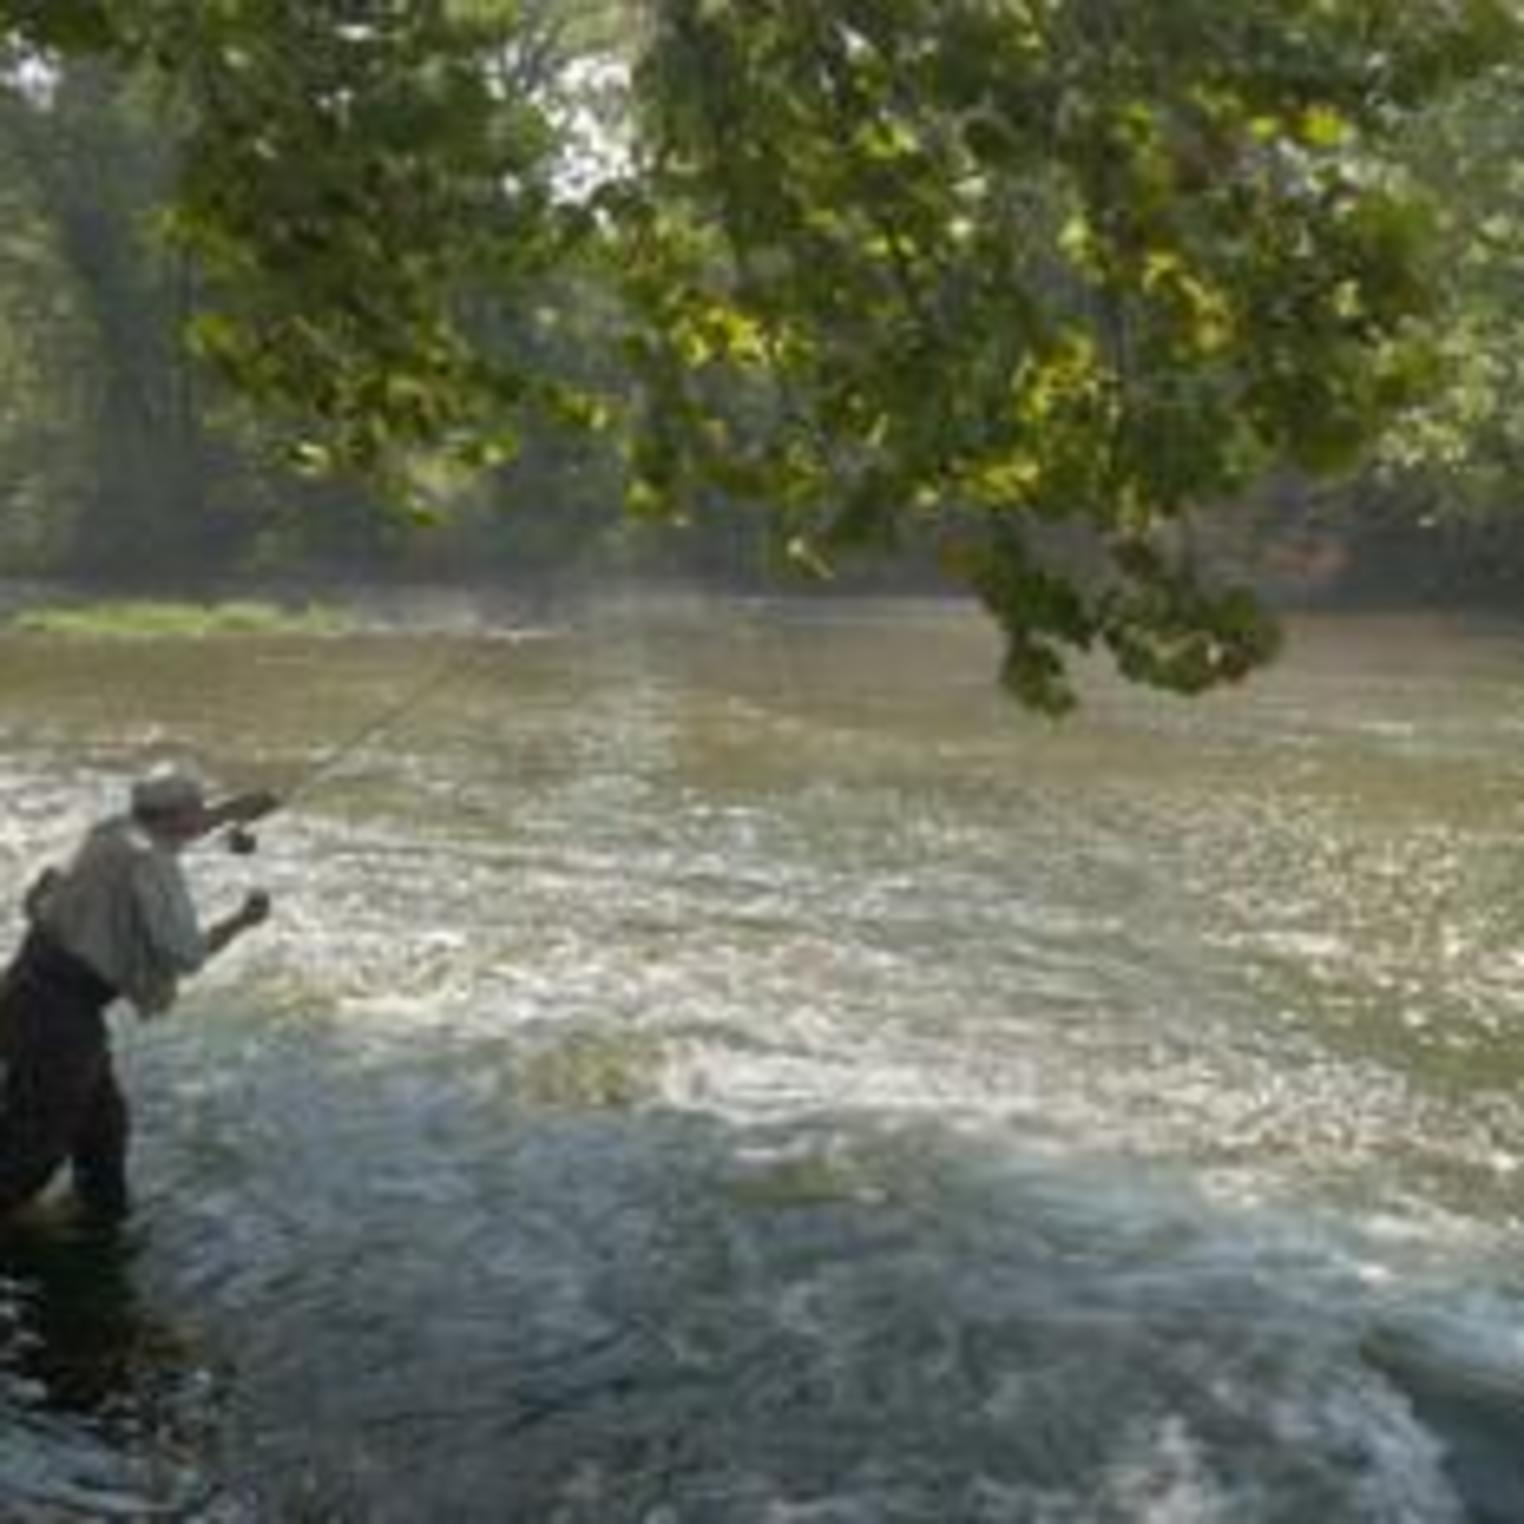 Fly-Fishing on the Yellow Breeches Creek at Allenberry